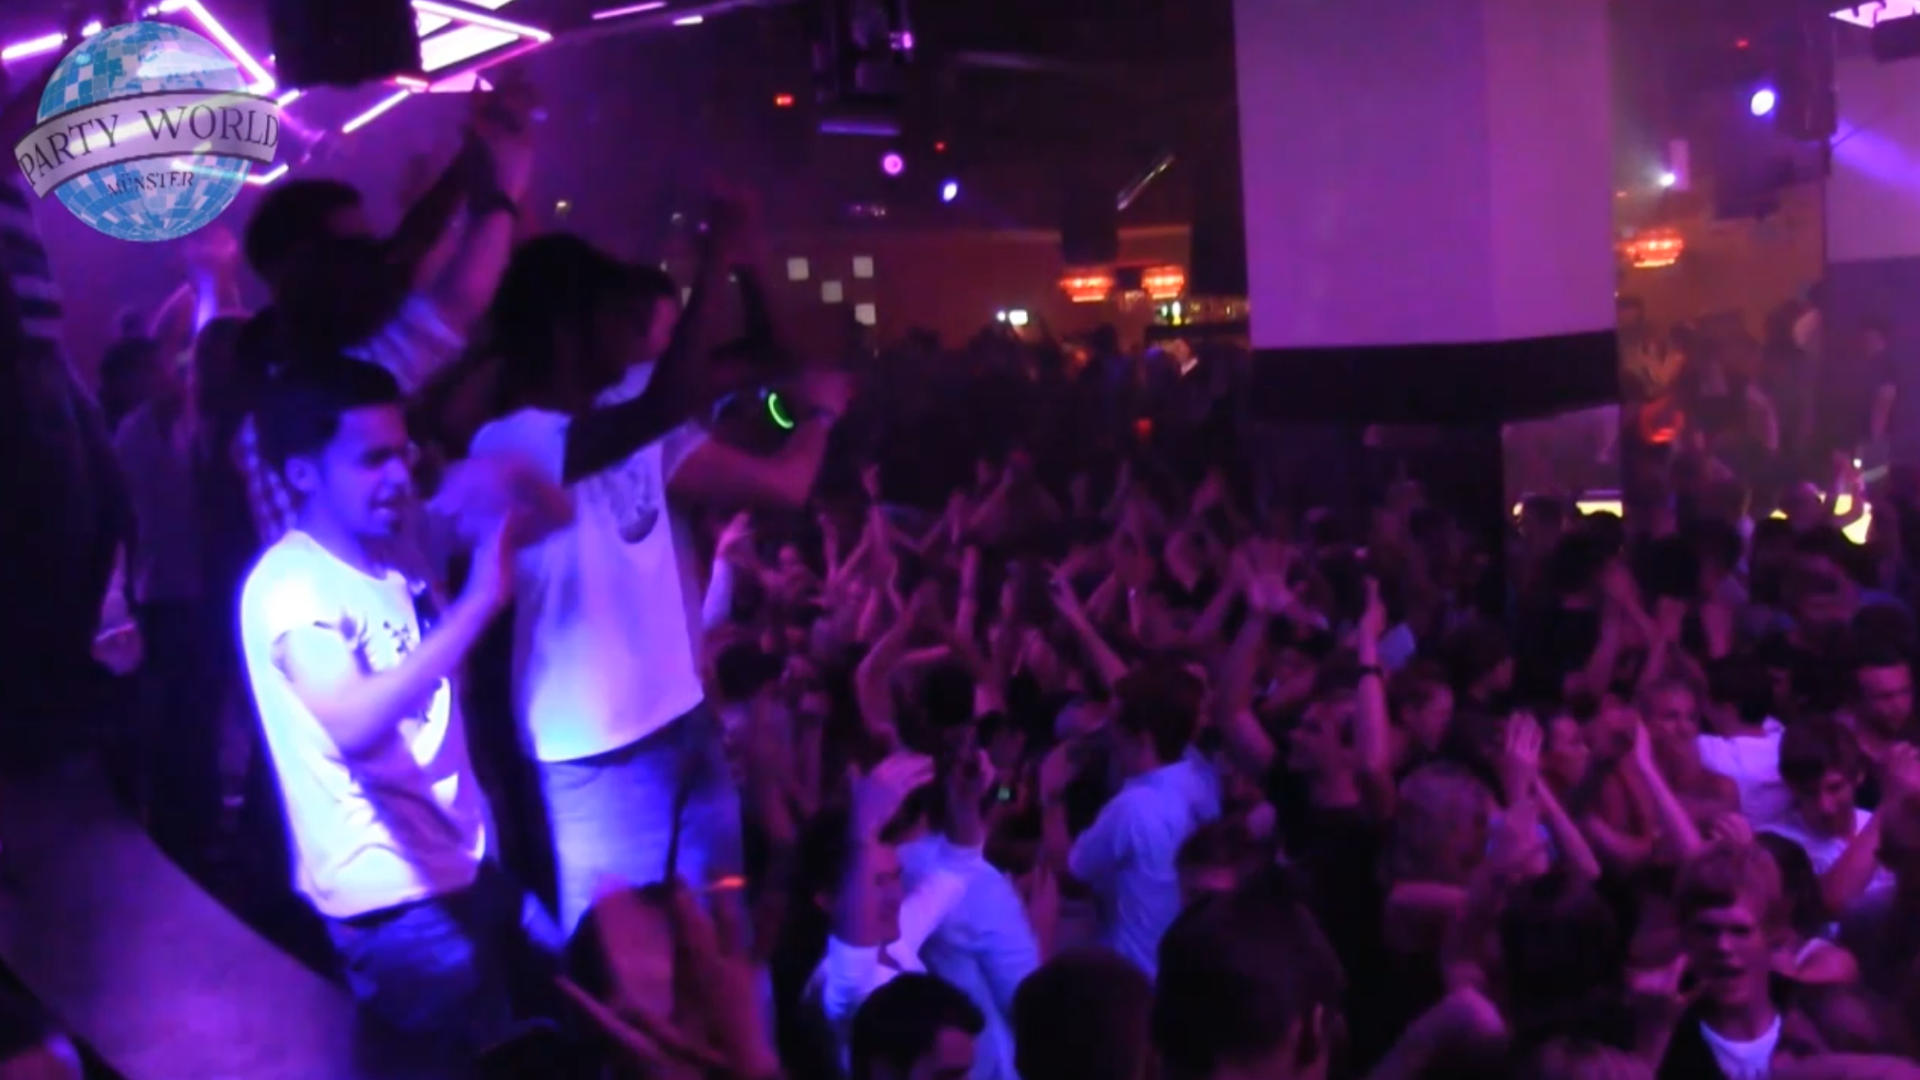 Thumbnail: Videoclips - Partyworld Münster